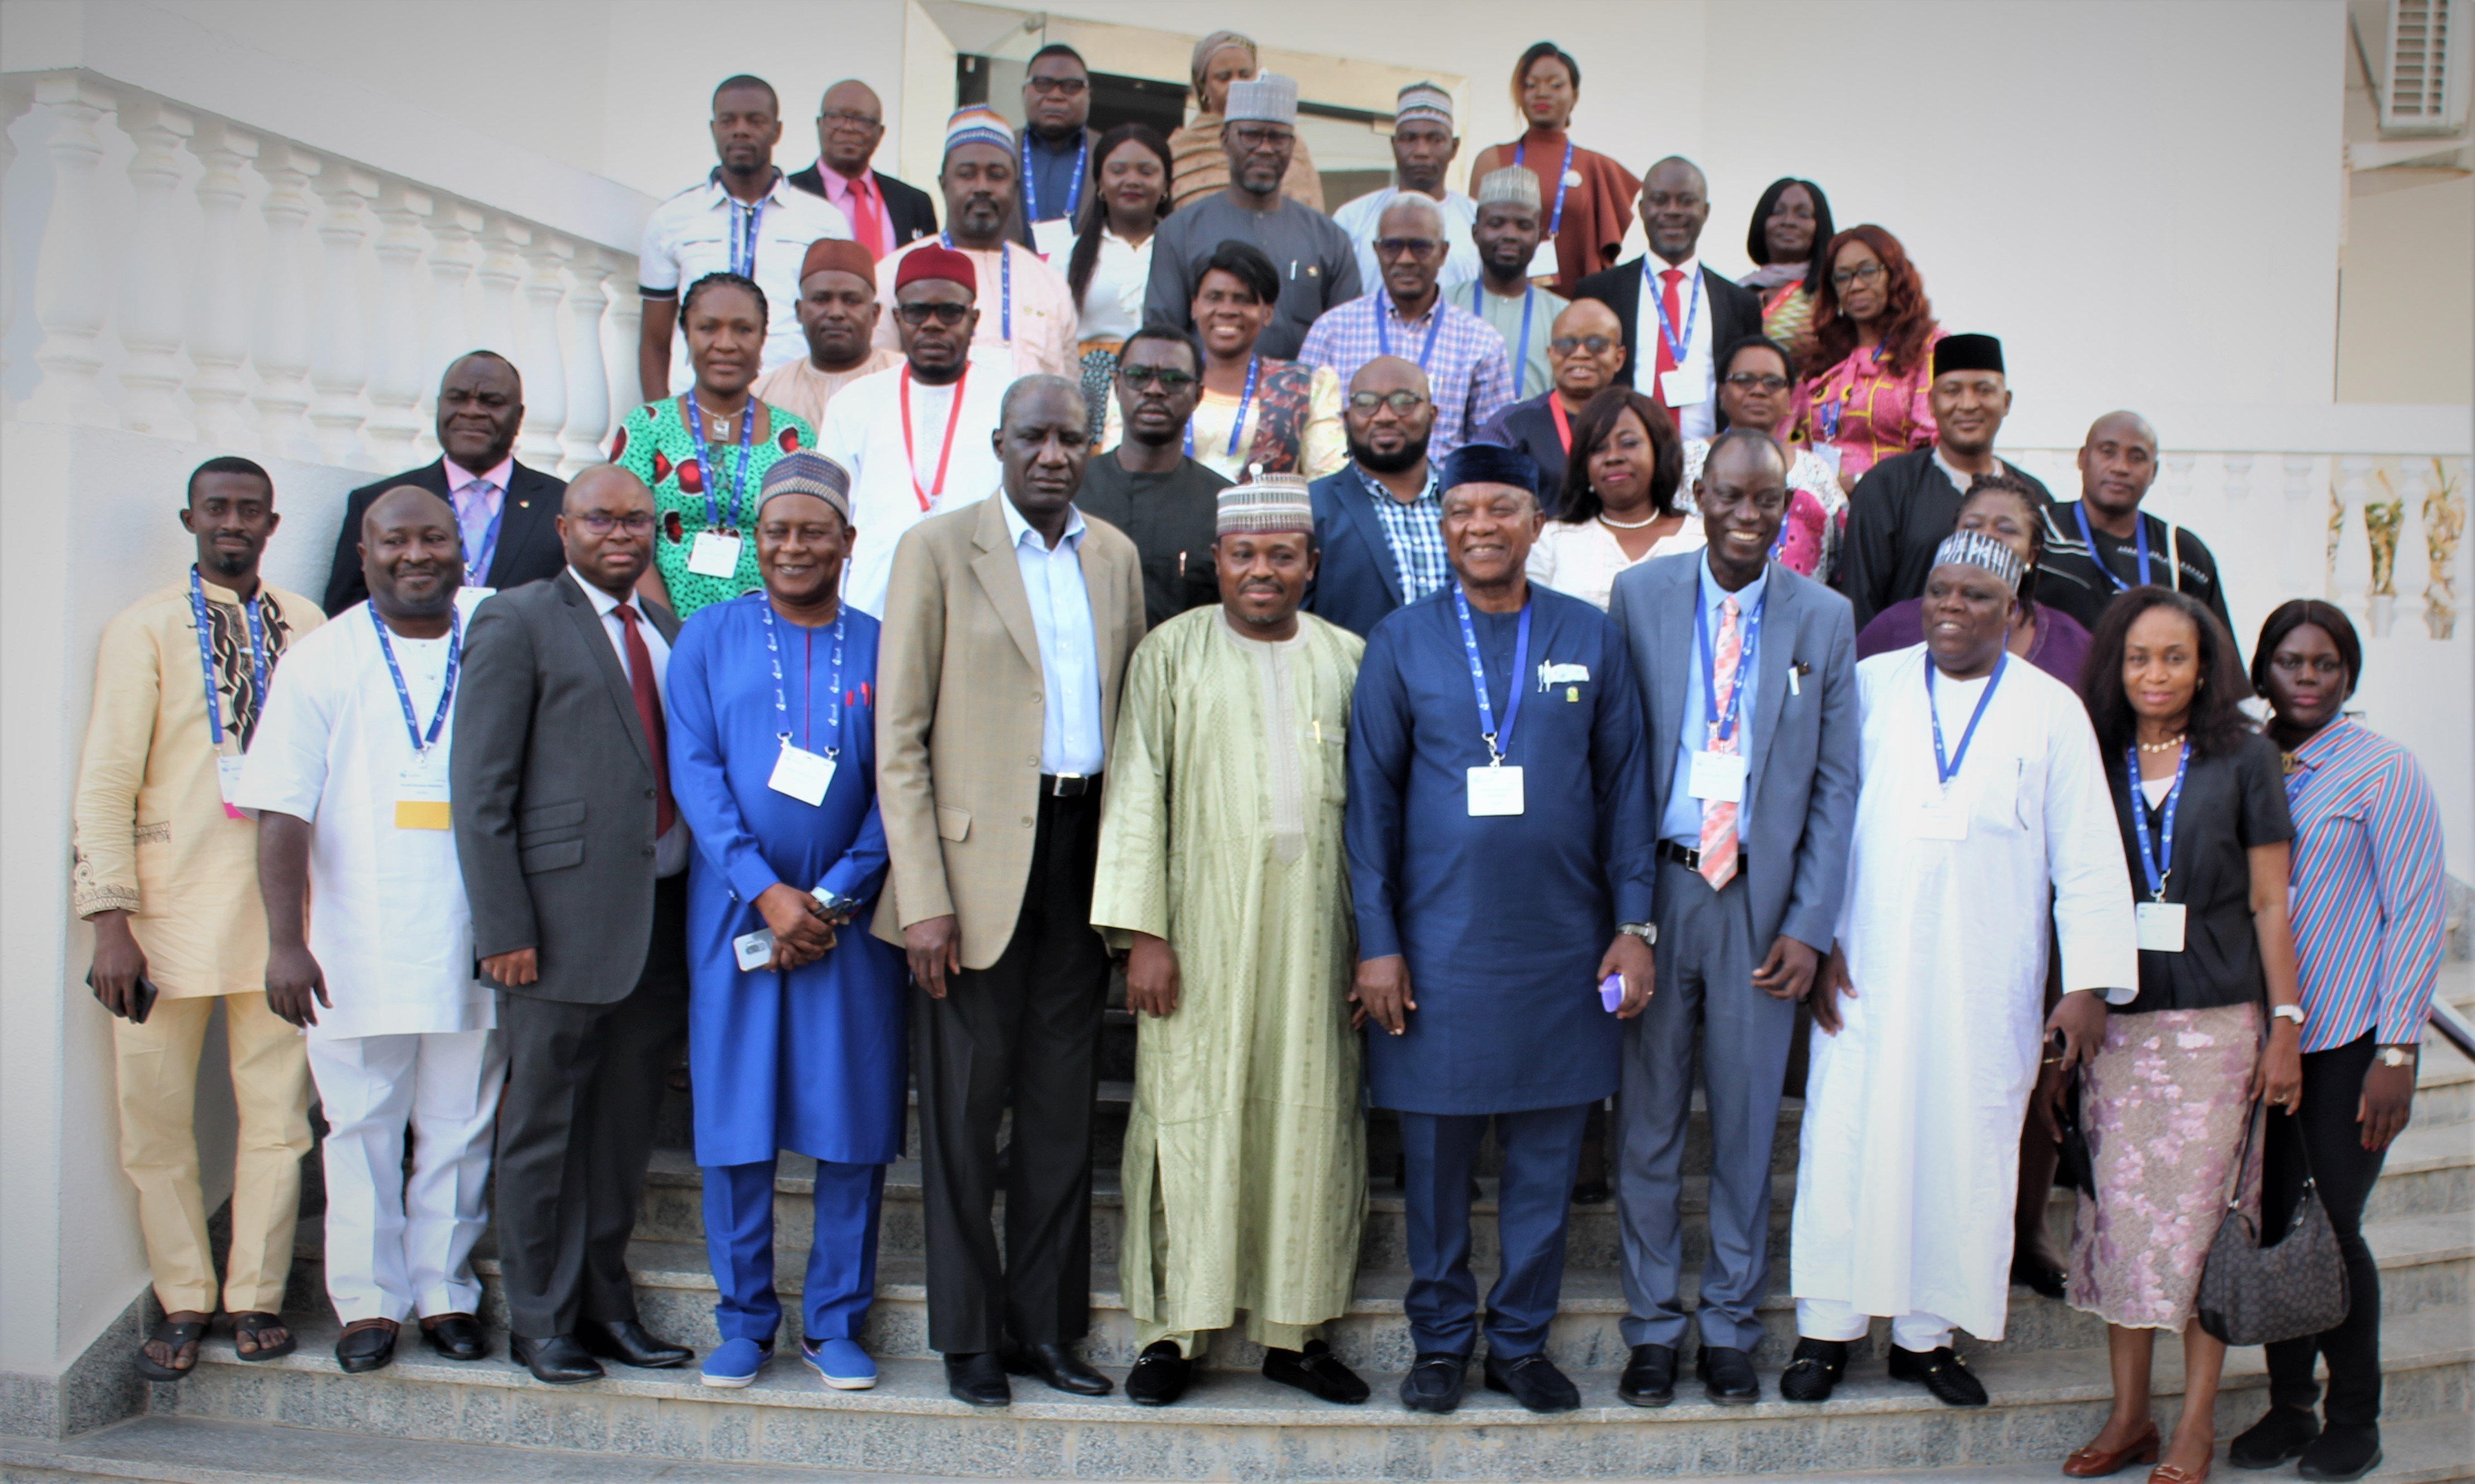 Pharmacists at 2019 FIP Conference Visit Nigerian Embassy in Abu Dhabi